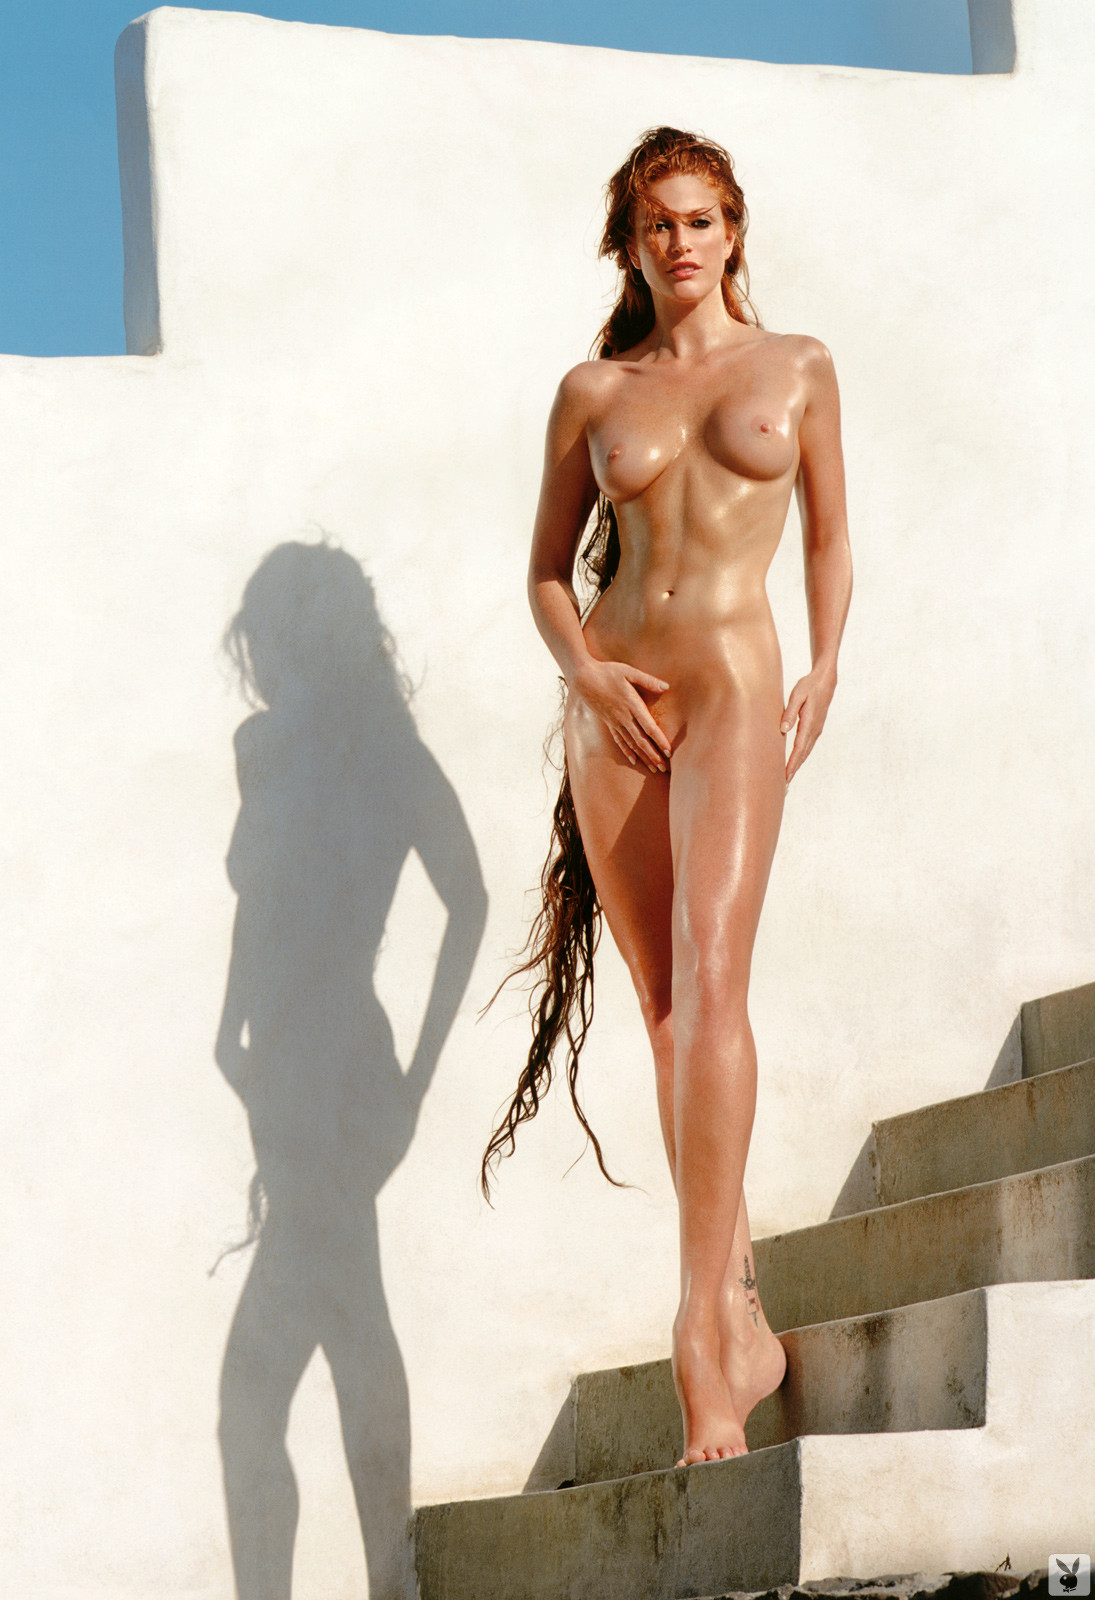 Angie Everhart Hot Sex angie everhart porn pic - eporner